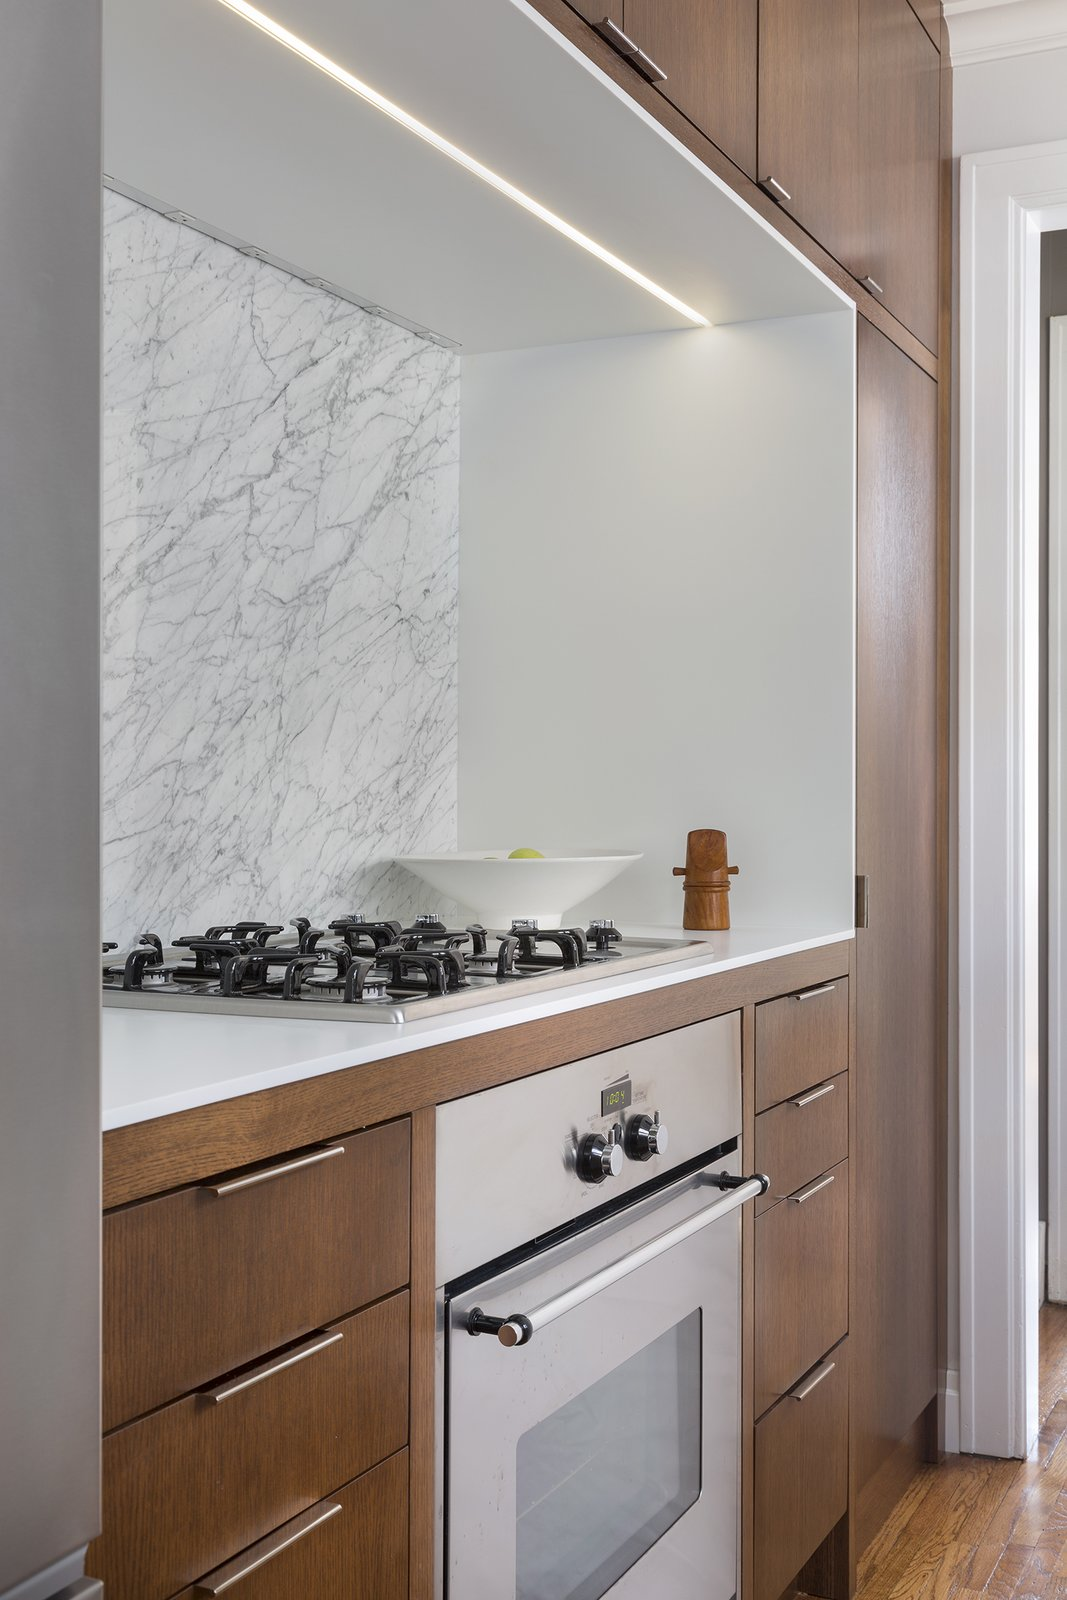 Another custom oak unit houses the oven, range, refrigerator, and pantry. Tagged: Kitchen, Wood Cabinet, Medium Hardwood Floor, Marble Backsplashe, Range, and Accent Lighting.  Photo 4 of 10 in How to Make Your Tiny Kitchen Feel Huge in 6 Easy Steps from Rebooting One Kansas House at a Time